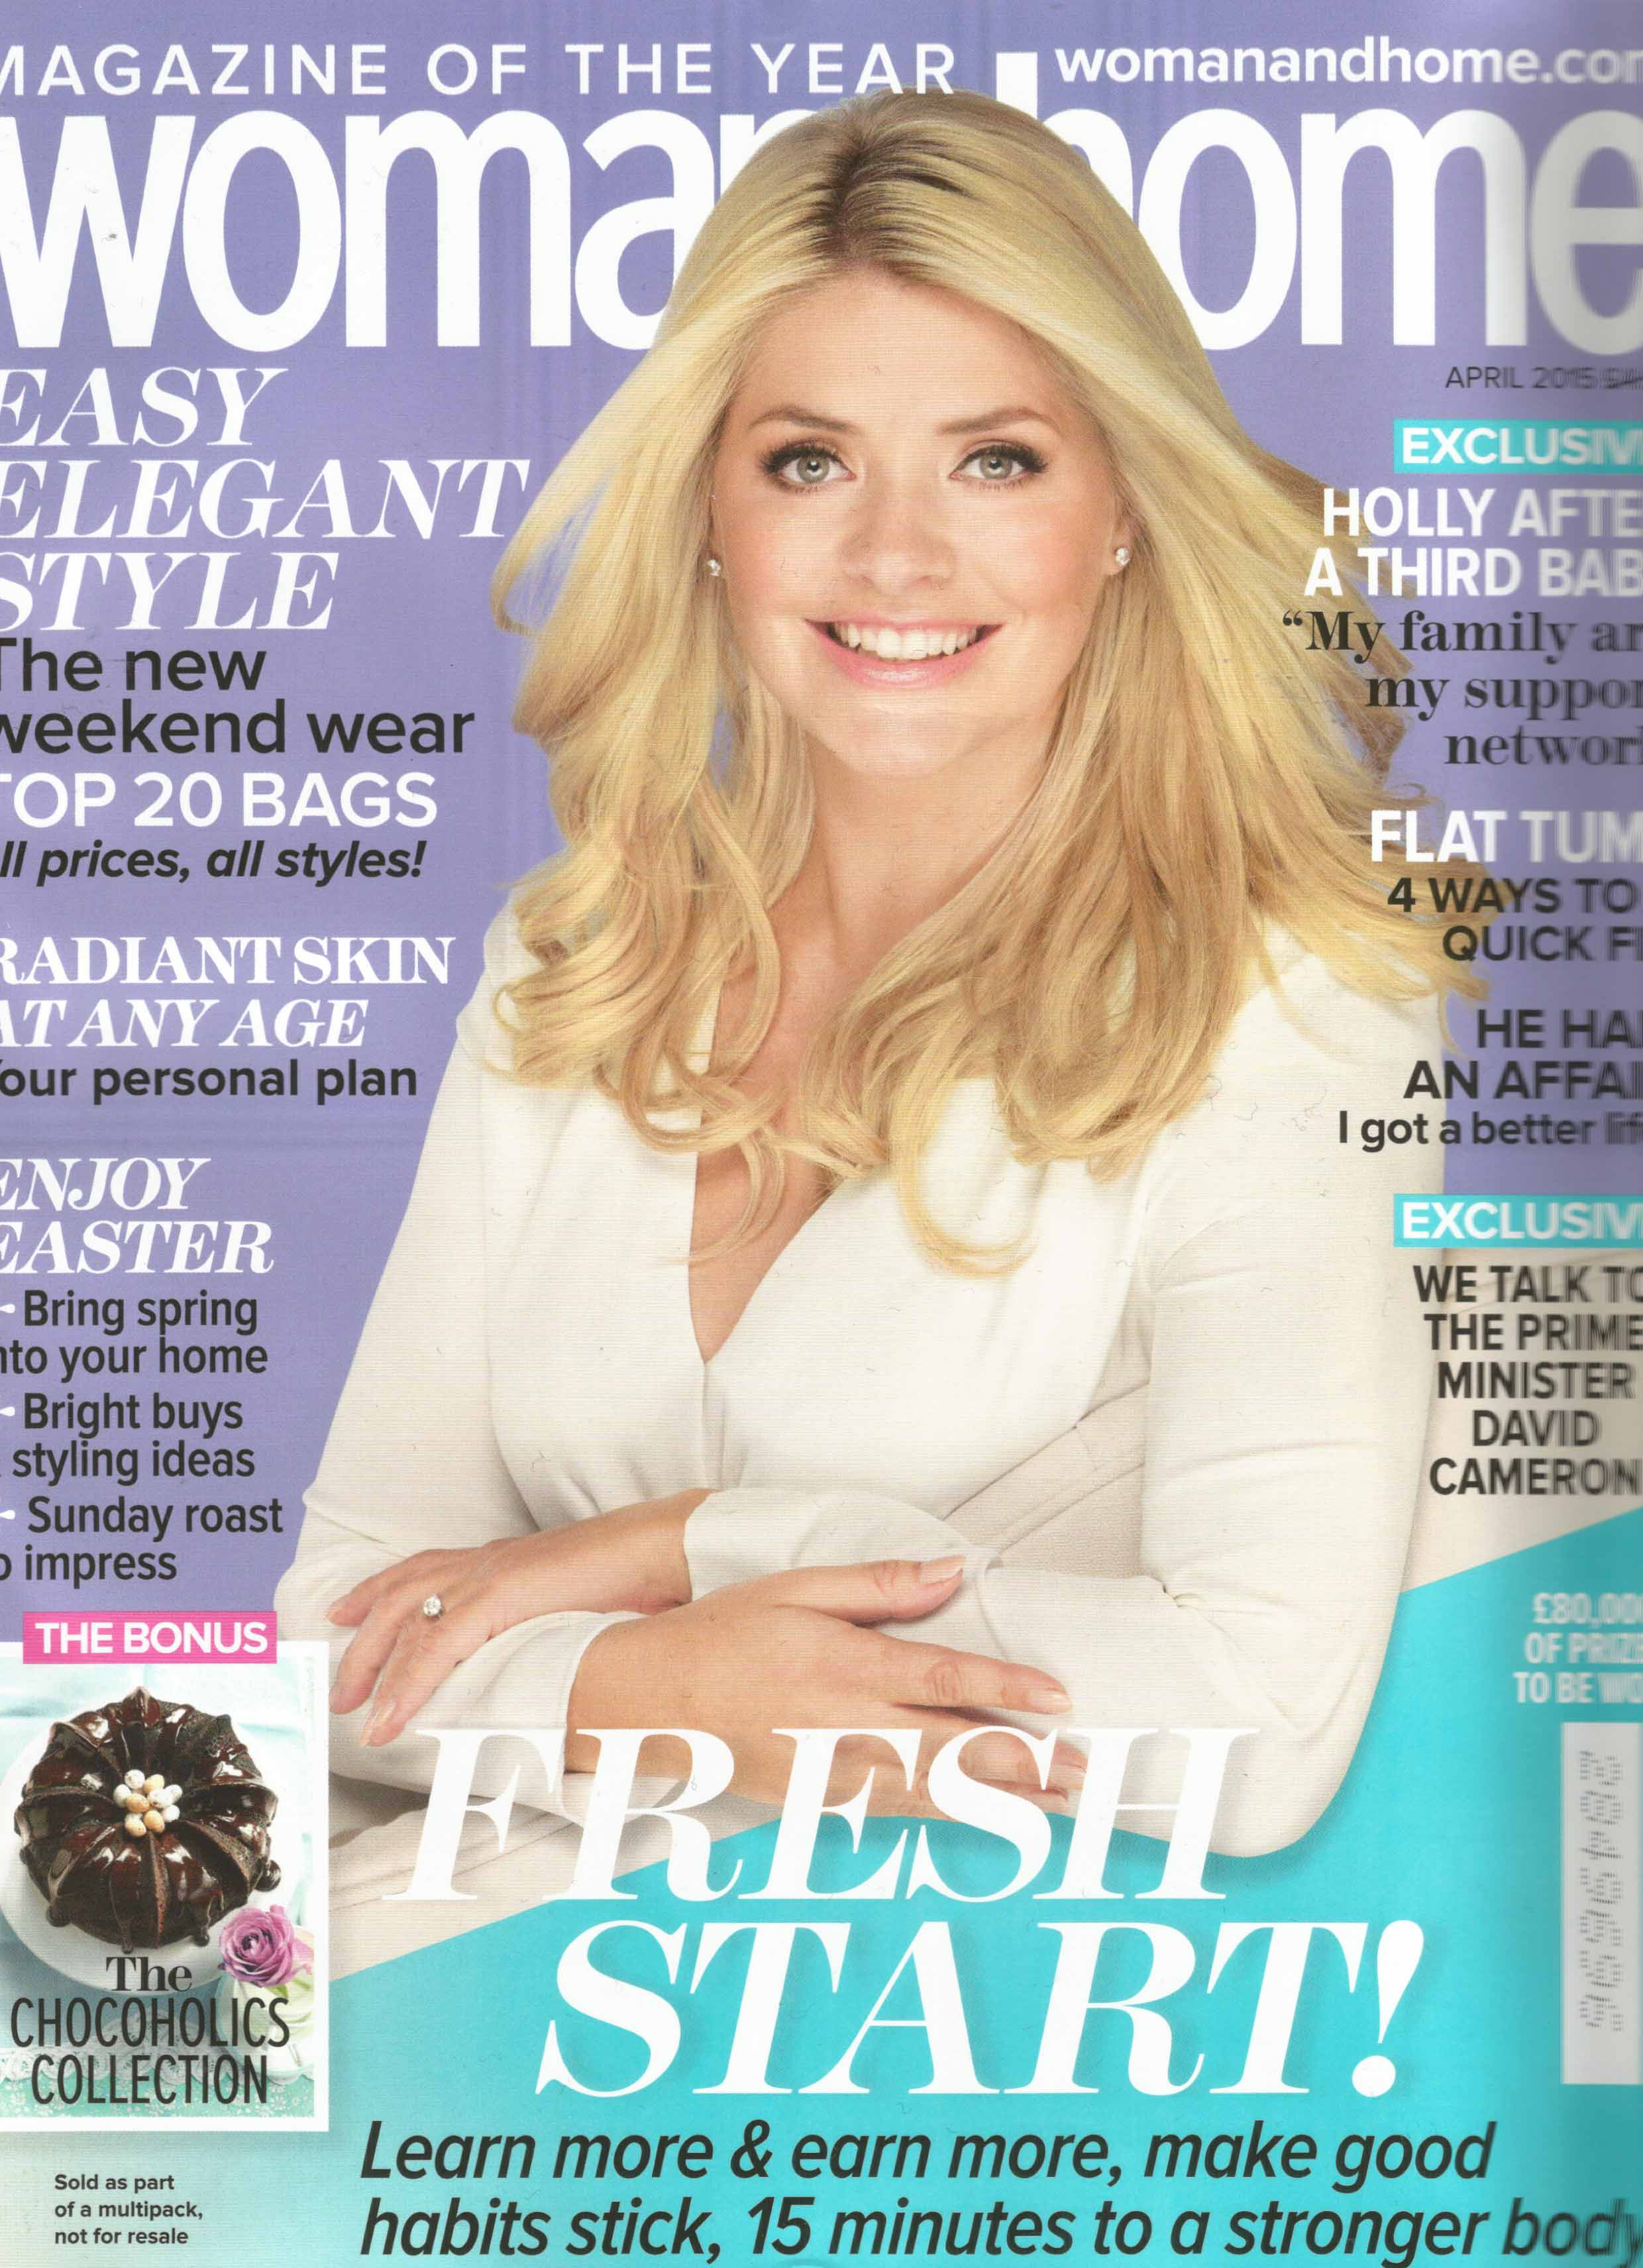 Woman_and_Home_Cover